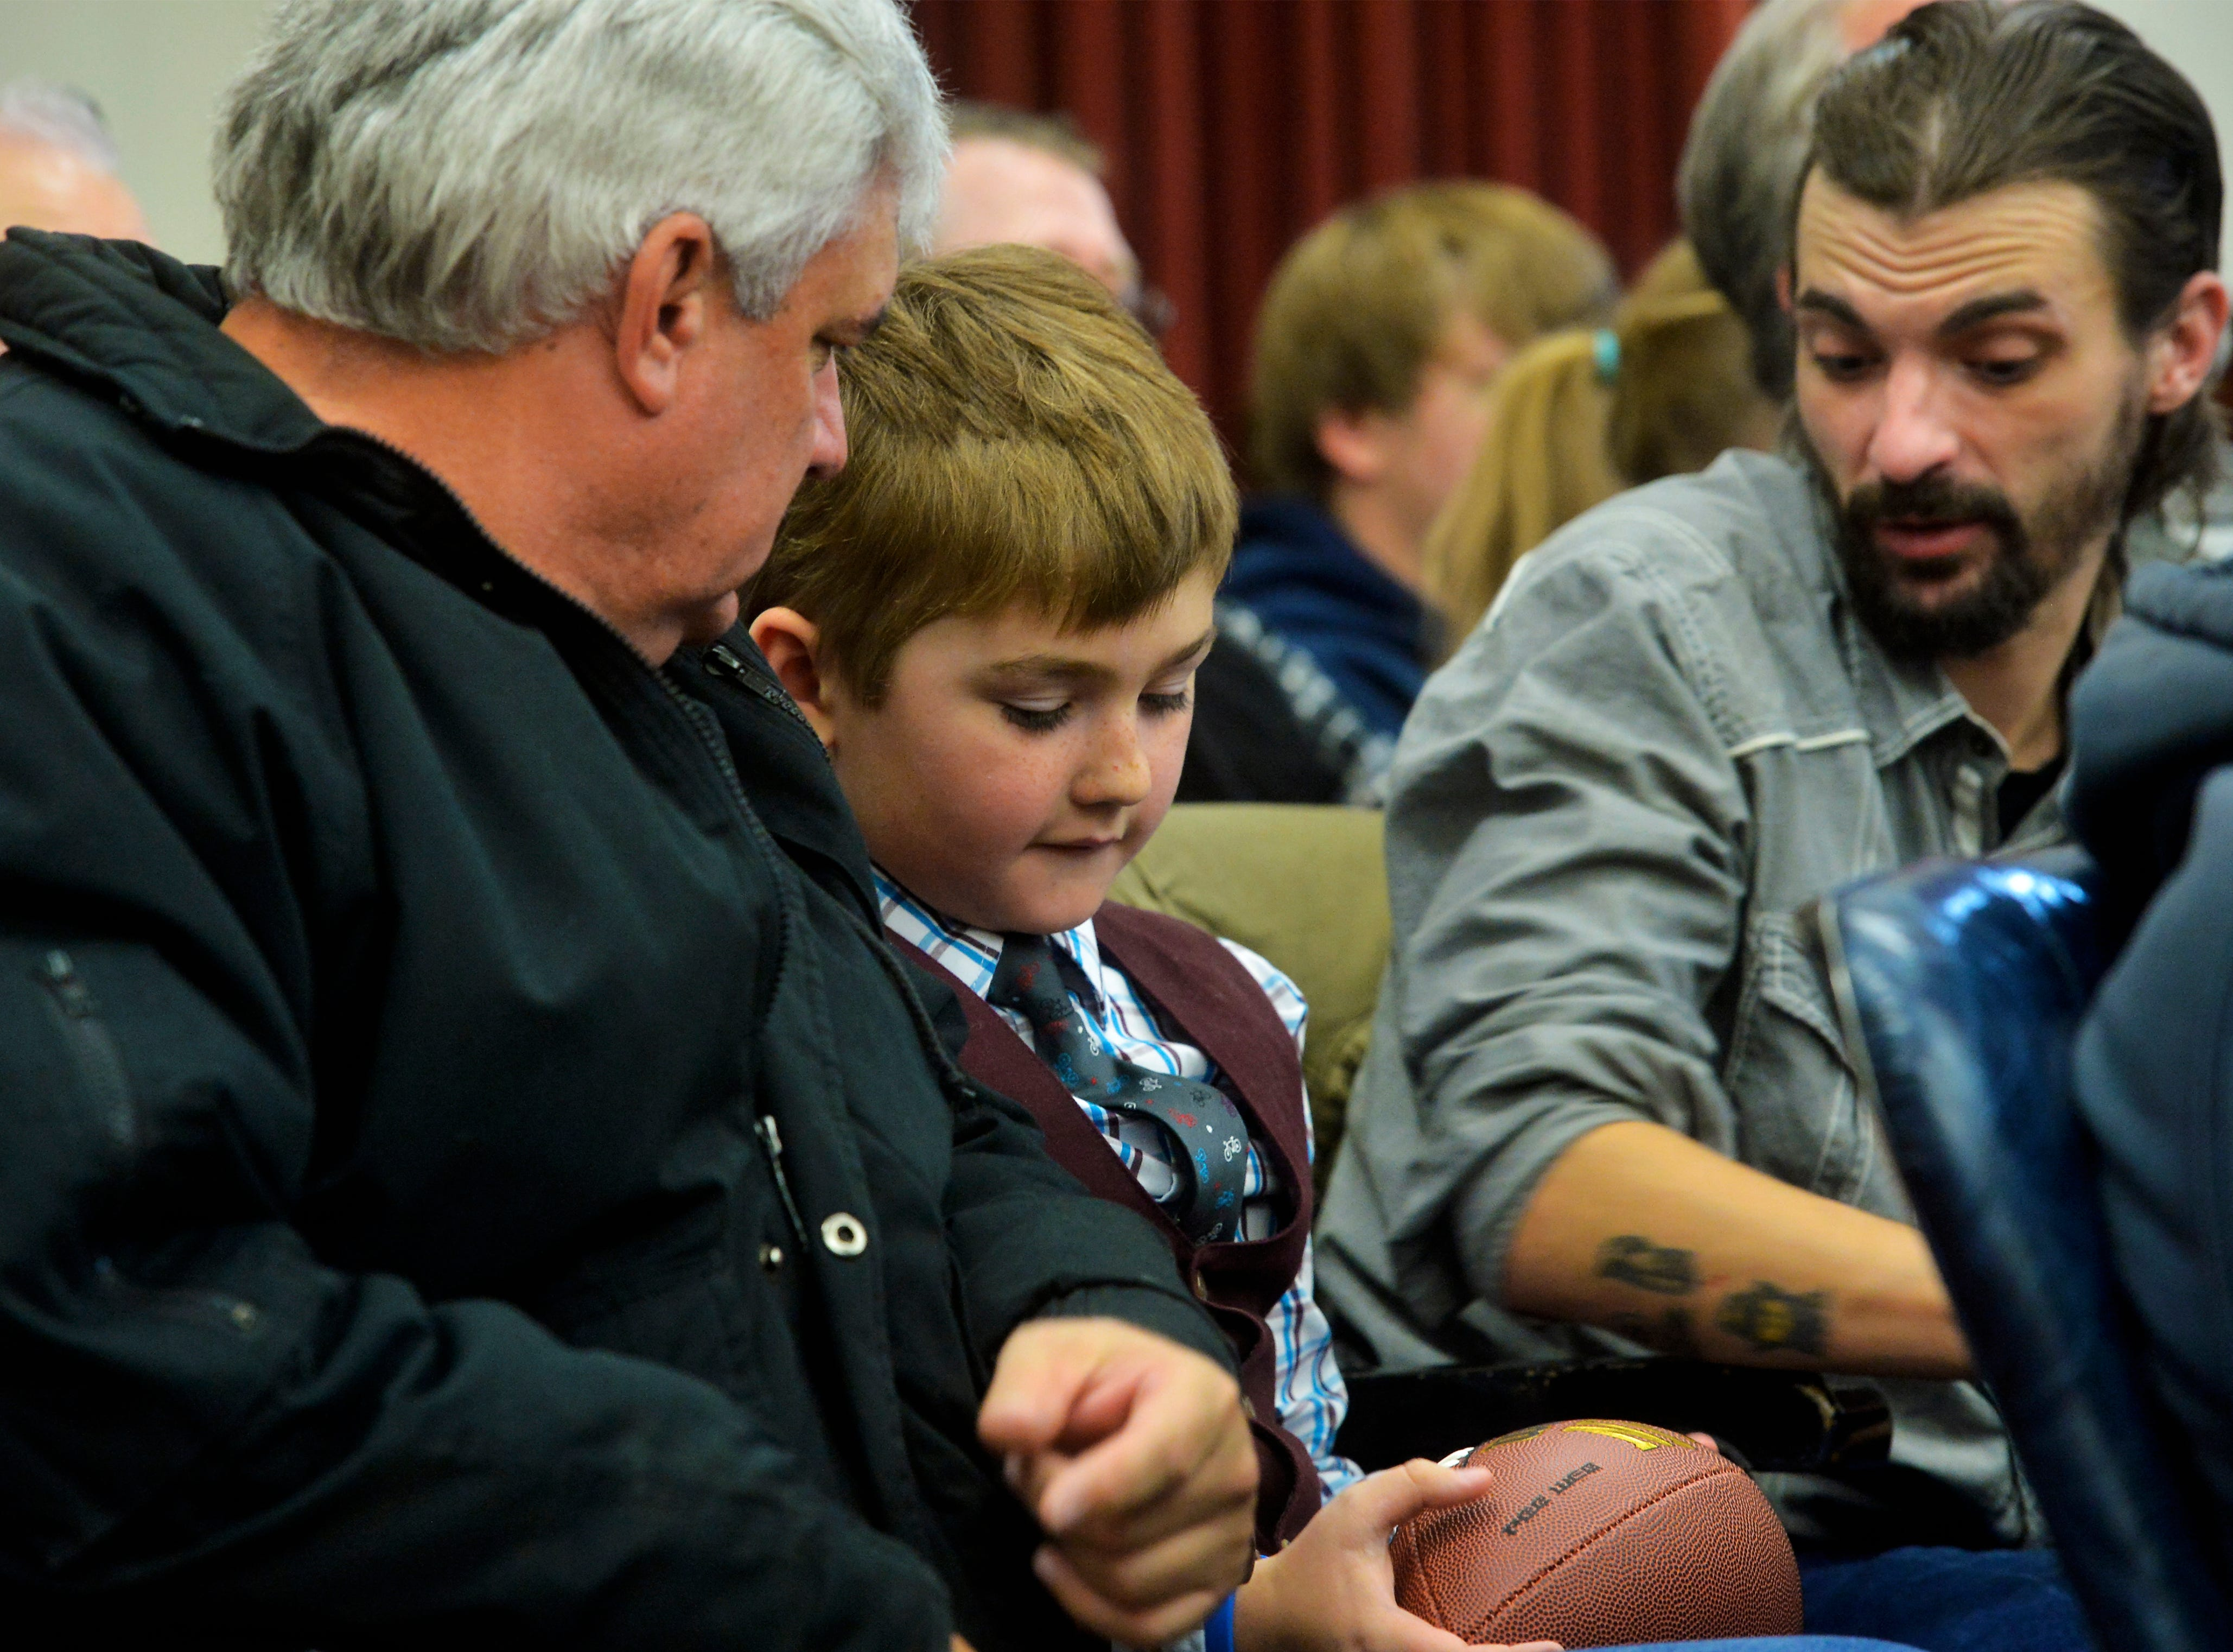 Mihkale Murphy, age 9, admires the gift football he received when his adoption was finalized at an adoption ceremony on Friday in the Cascade County Courthouse.